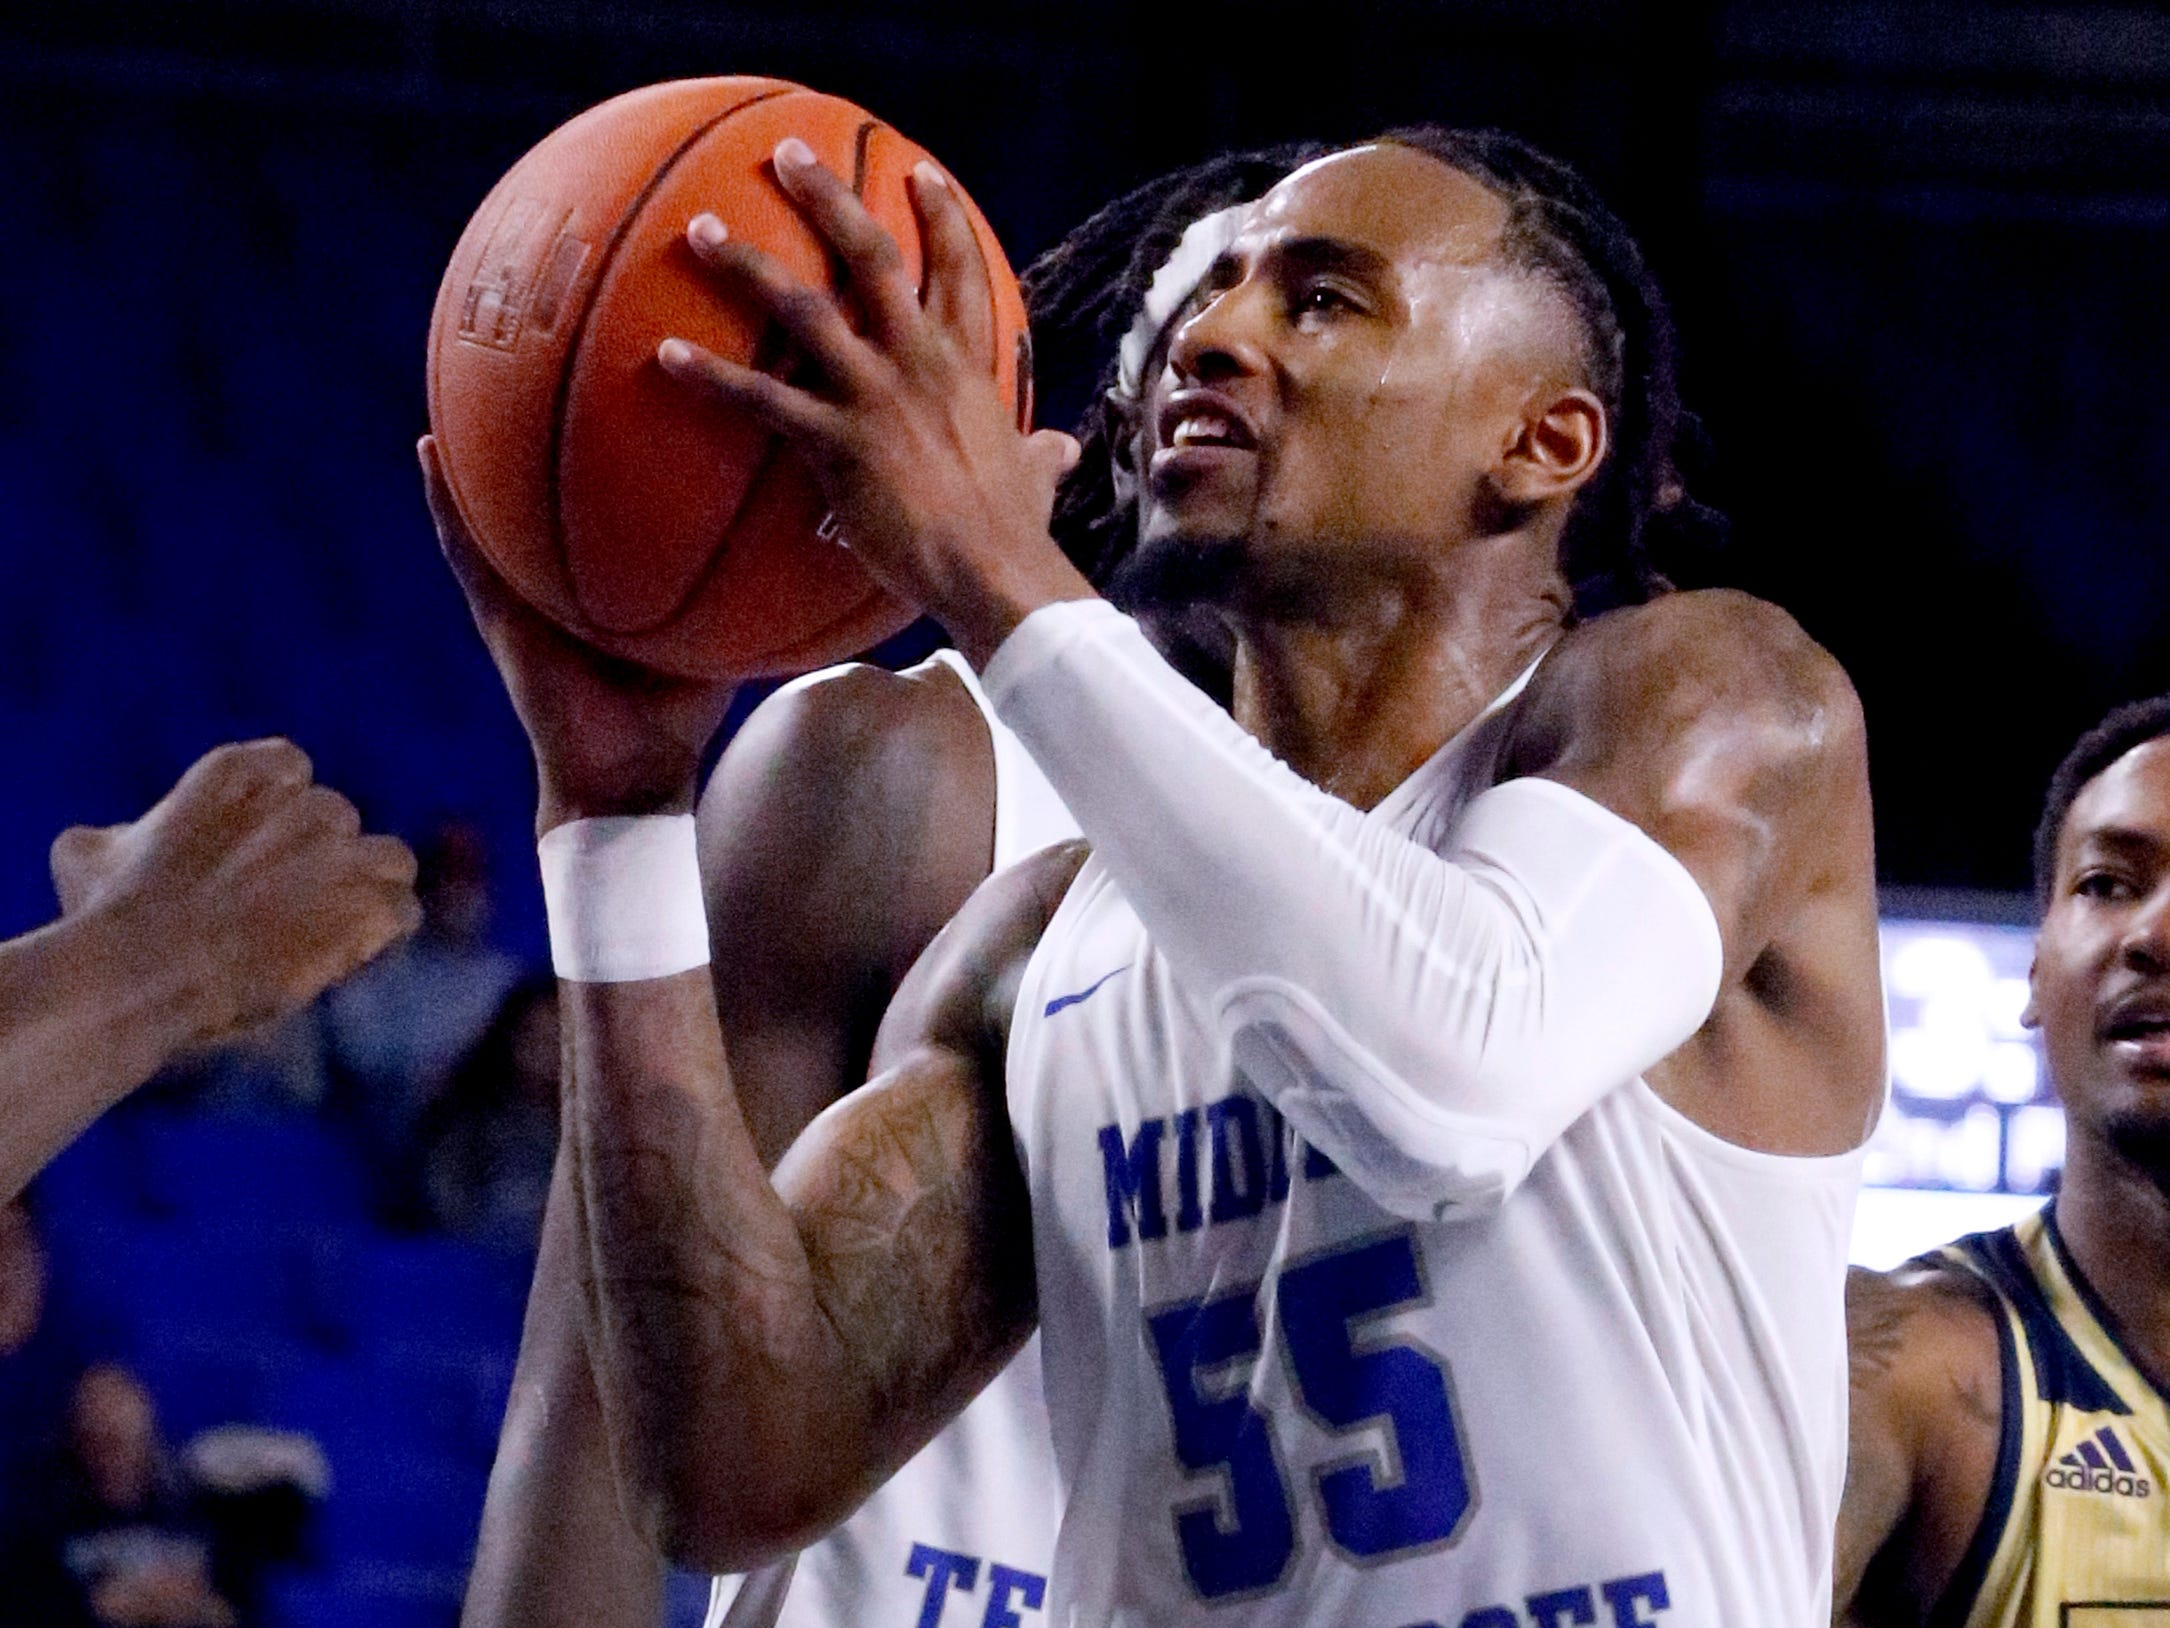 MTSU's guard Antonio Green (55) goes up for  a shot during the game against FIU on Thursday Jan. 3, 2019, at MTSU.